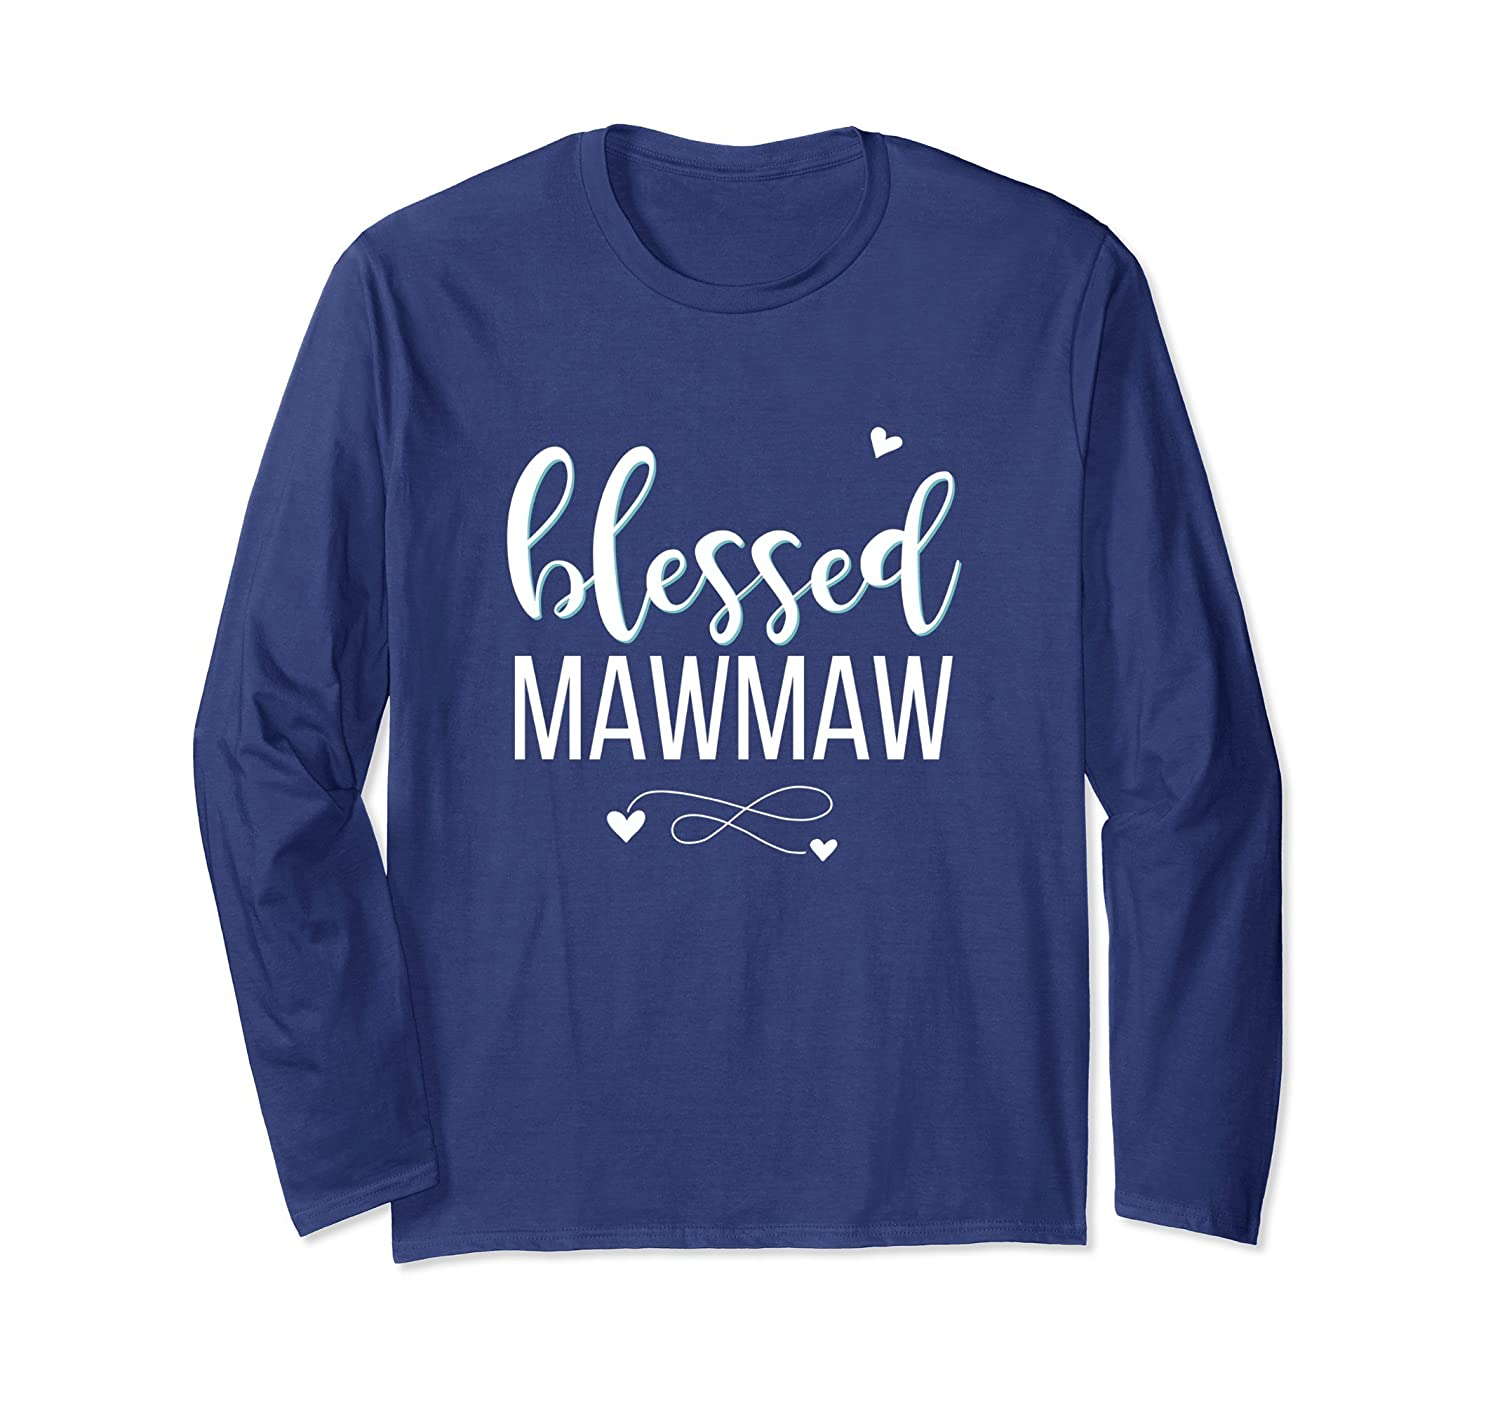 Blessed Mawmaw Christian Long Sleeve T Shirt Gift Apparel-alottee gift